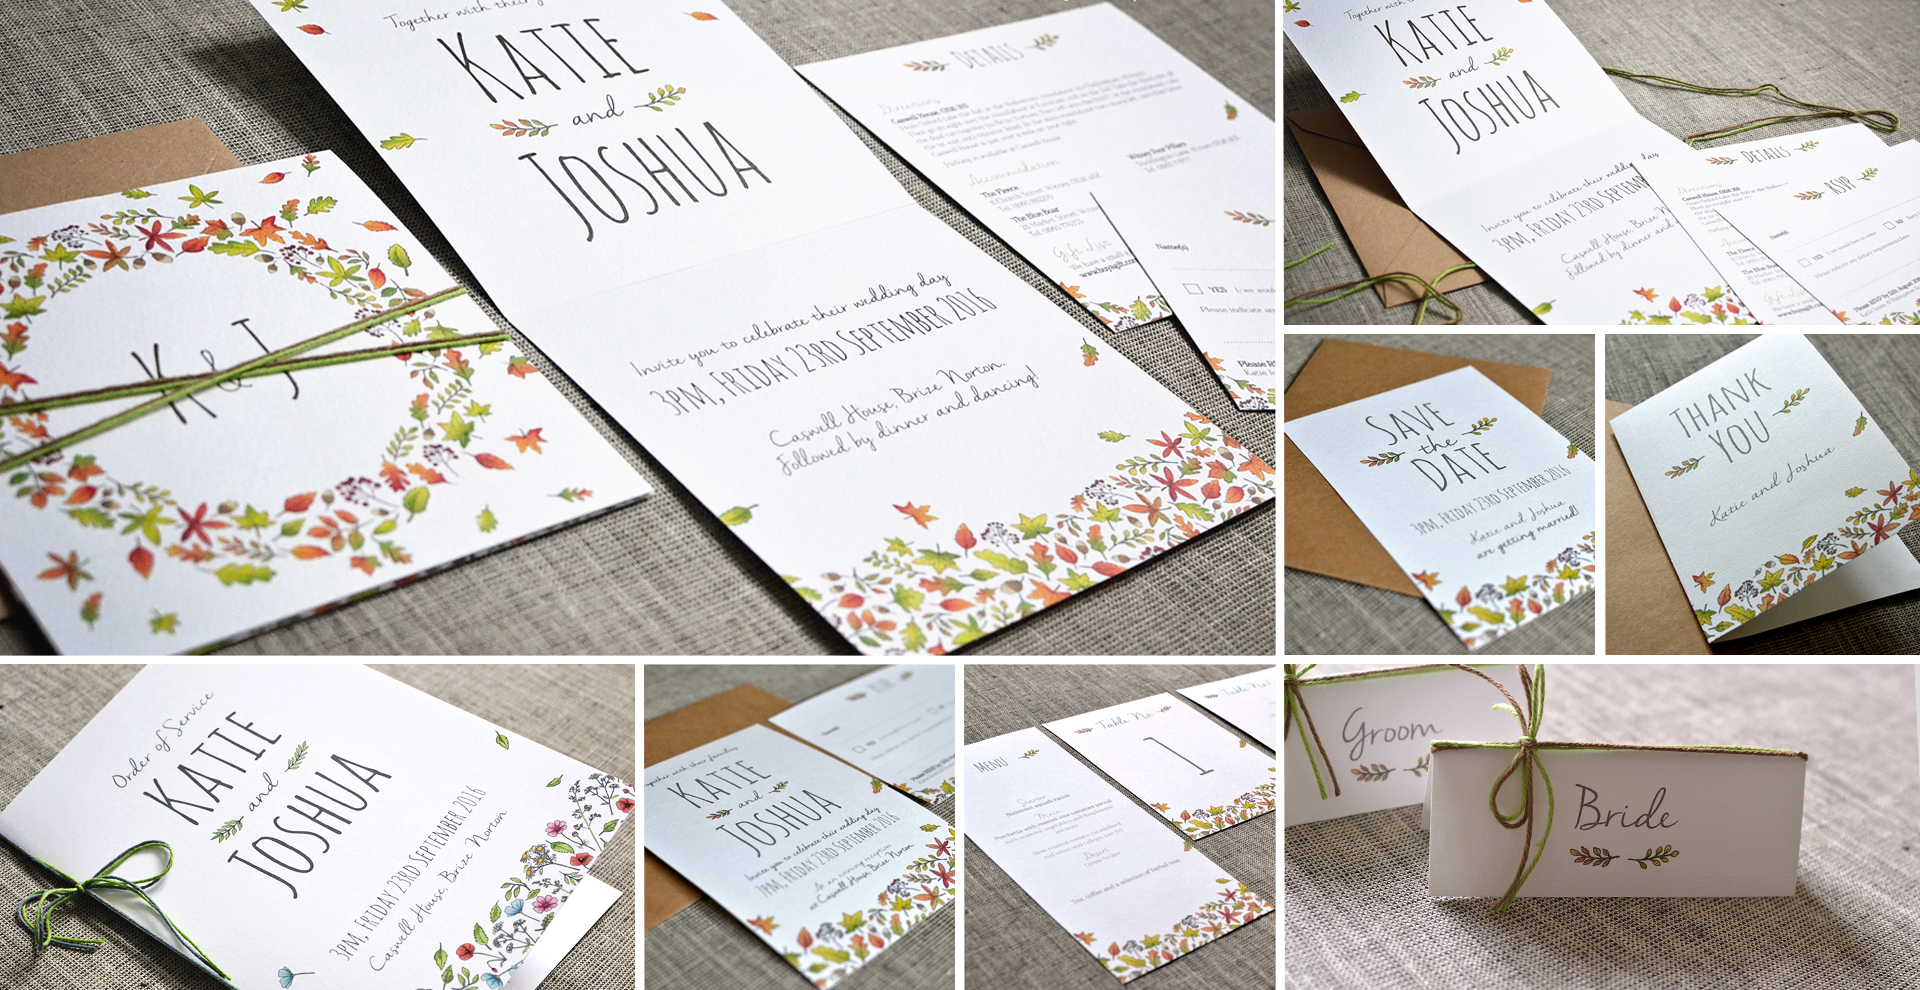 Autumn wedding invitation and stationery - Autumn Leaves design